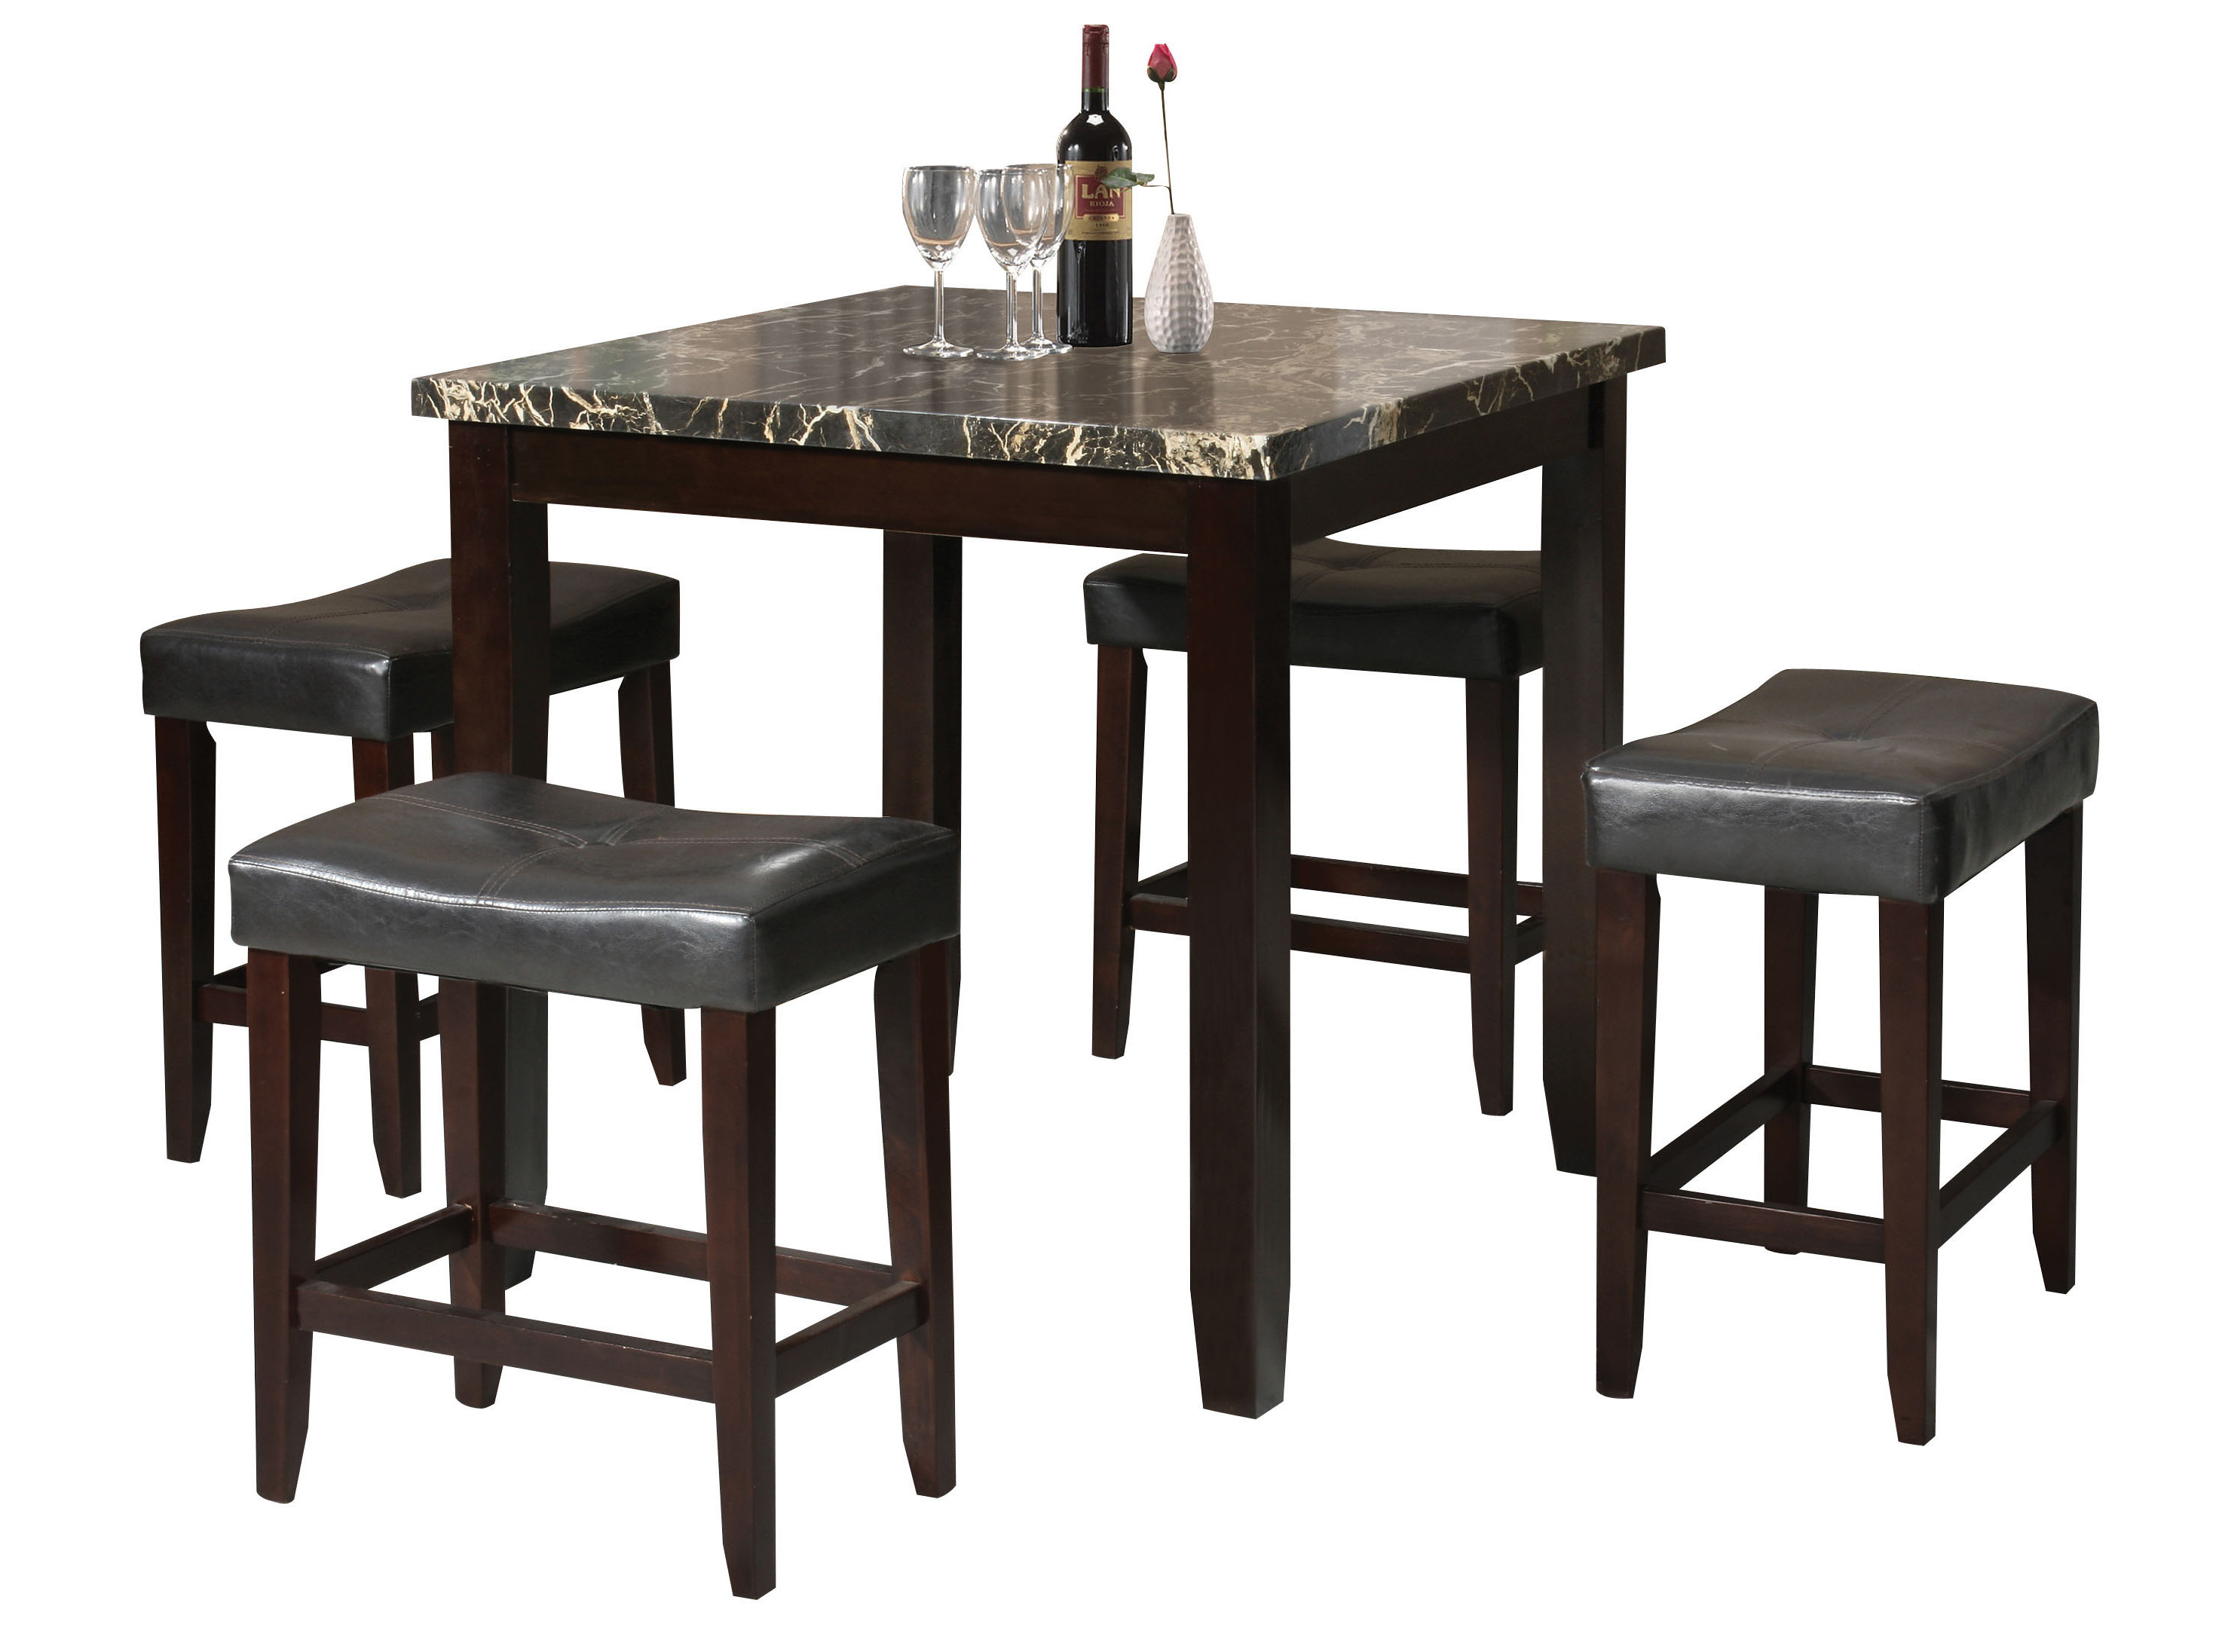 Bryson 5 Piece Dining Sets Within Most Recent Dehaven 5 Piece Counter Height Dining Set & Reviews (View 13 of 20)